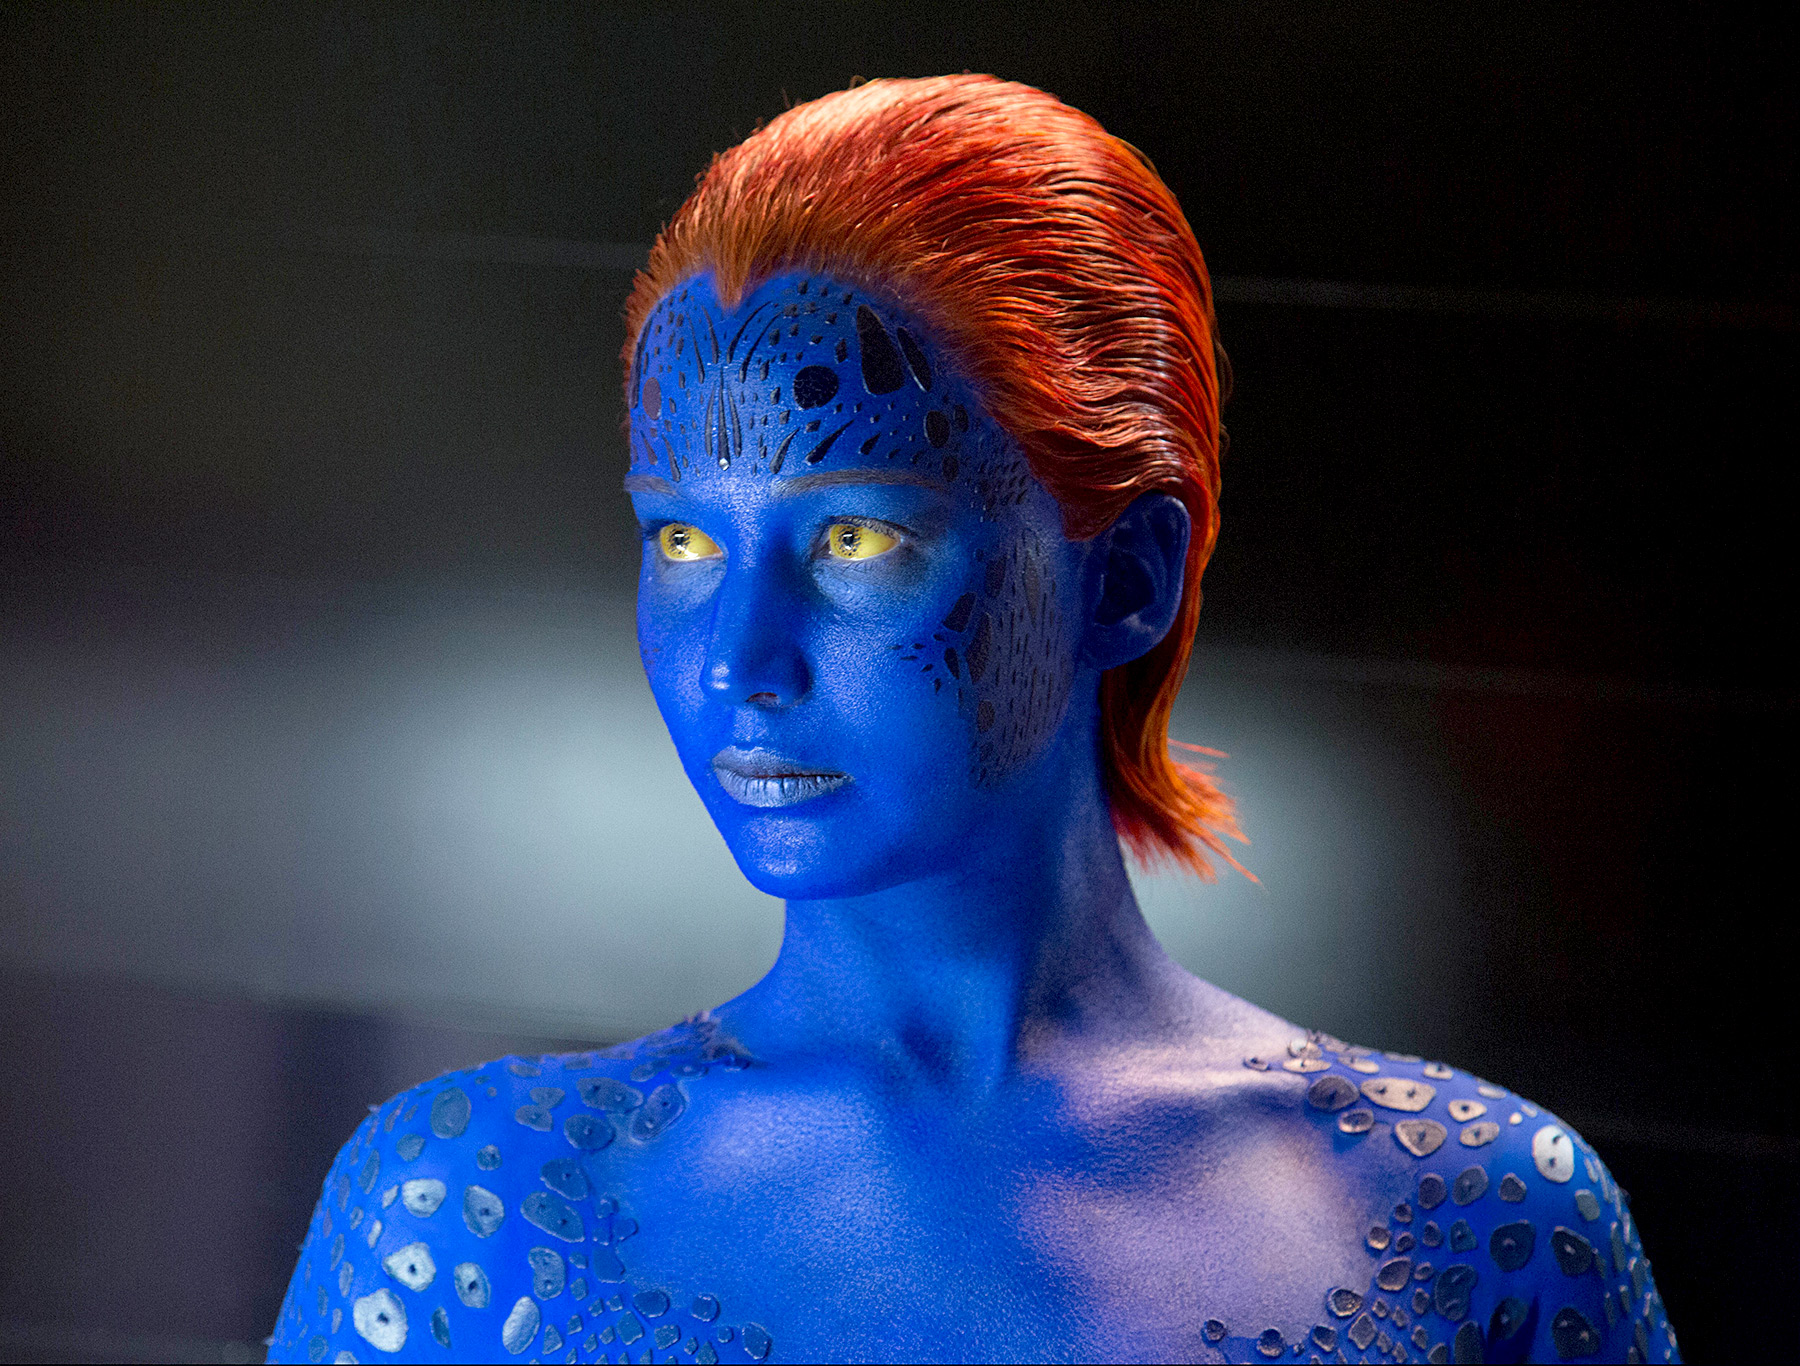 Hunger Games star Jennifer Lawrence went bad and blue as Raven Darkholme/Mystique in 2011's X-Men: First Class and 2014's X-Men: Days of Future Past .